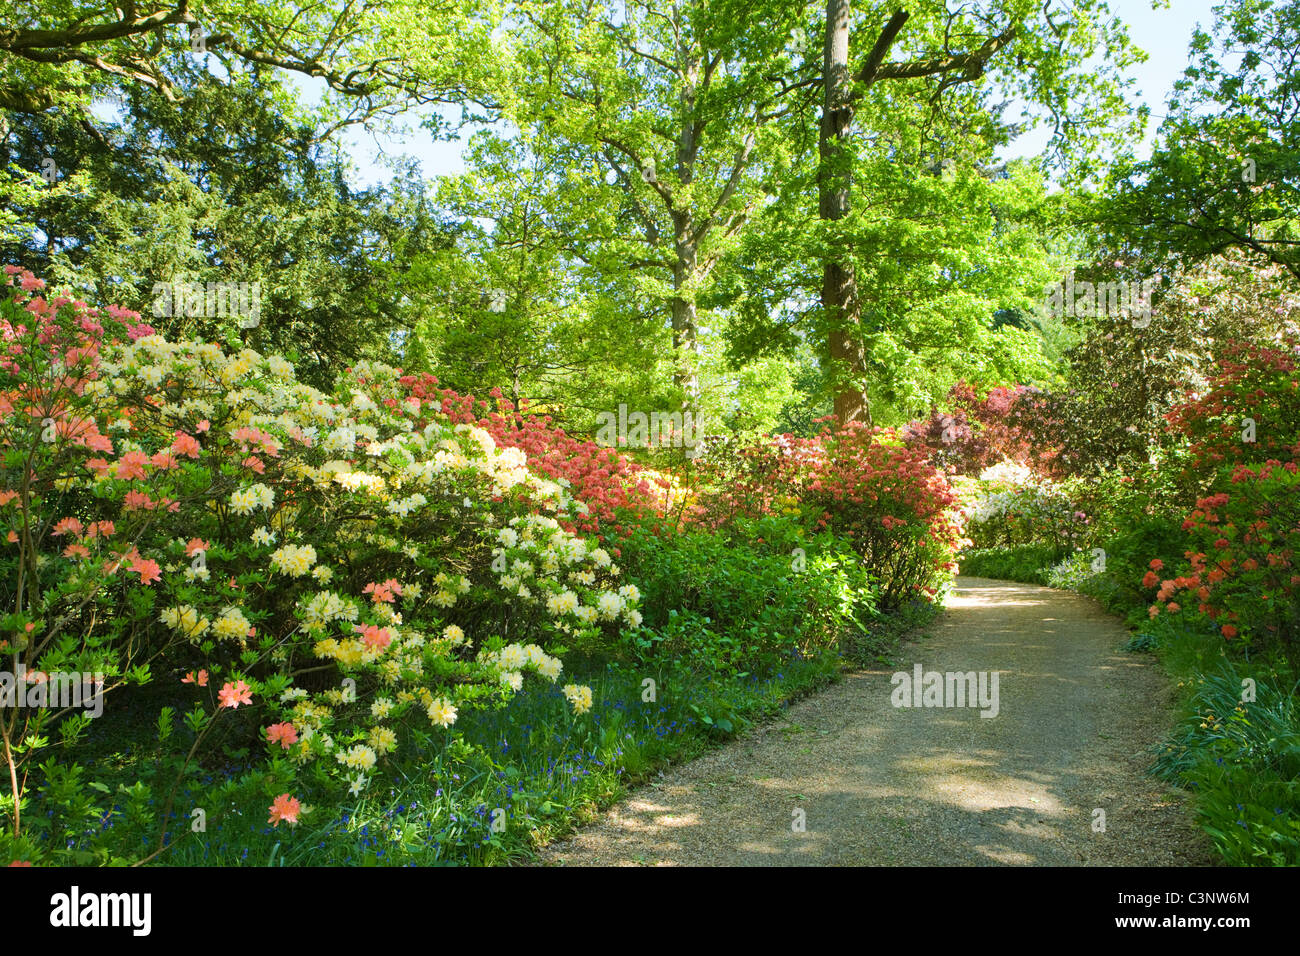 Garden with Rhododendrons, Coverwood Farm, Surrey, UK. - Stock Image